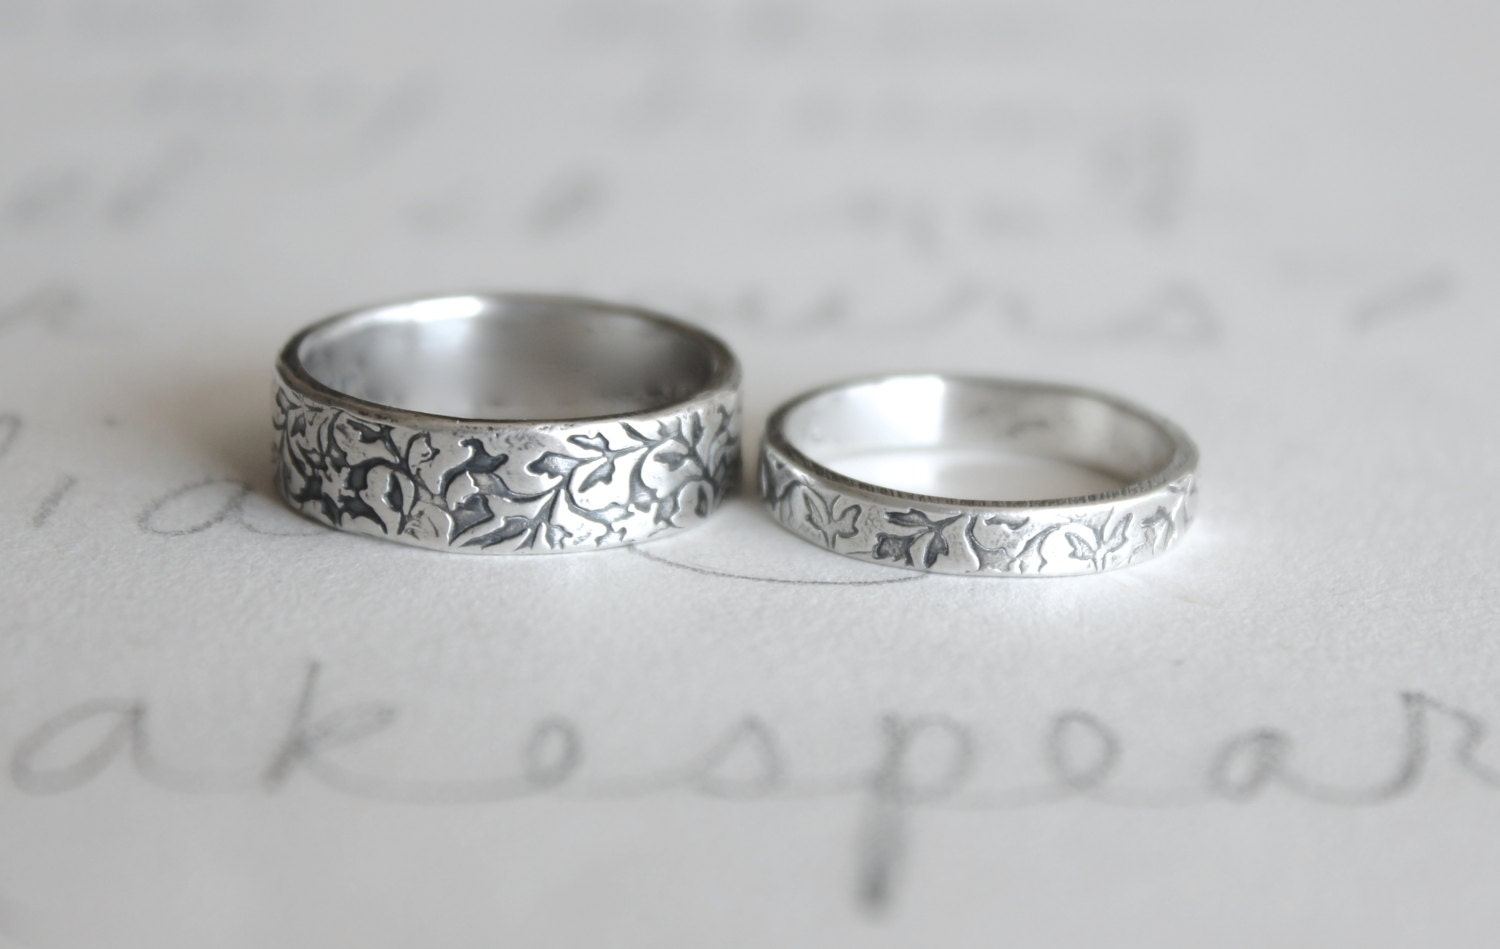 wedding band ring set vine leaf wedding rings bands handmade silver wedding ring set - Wedding Band Rings